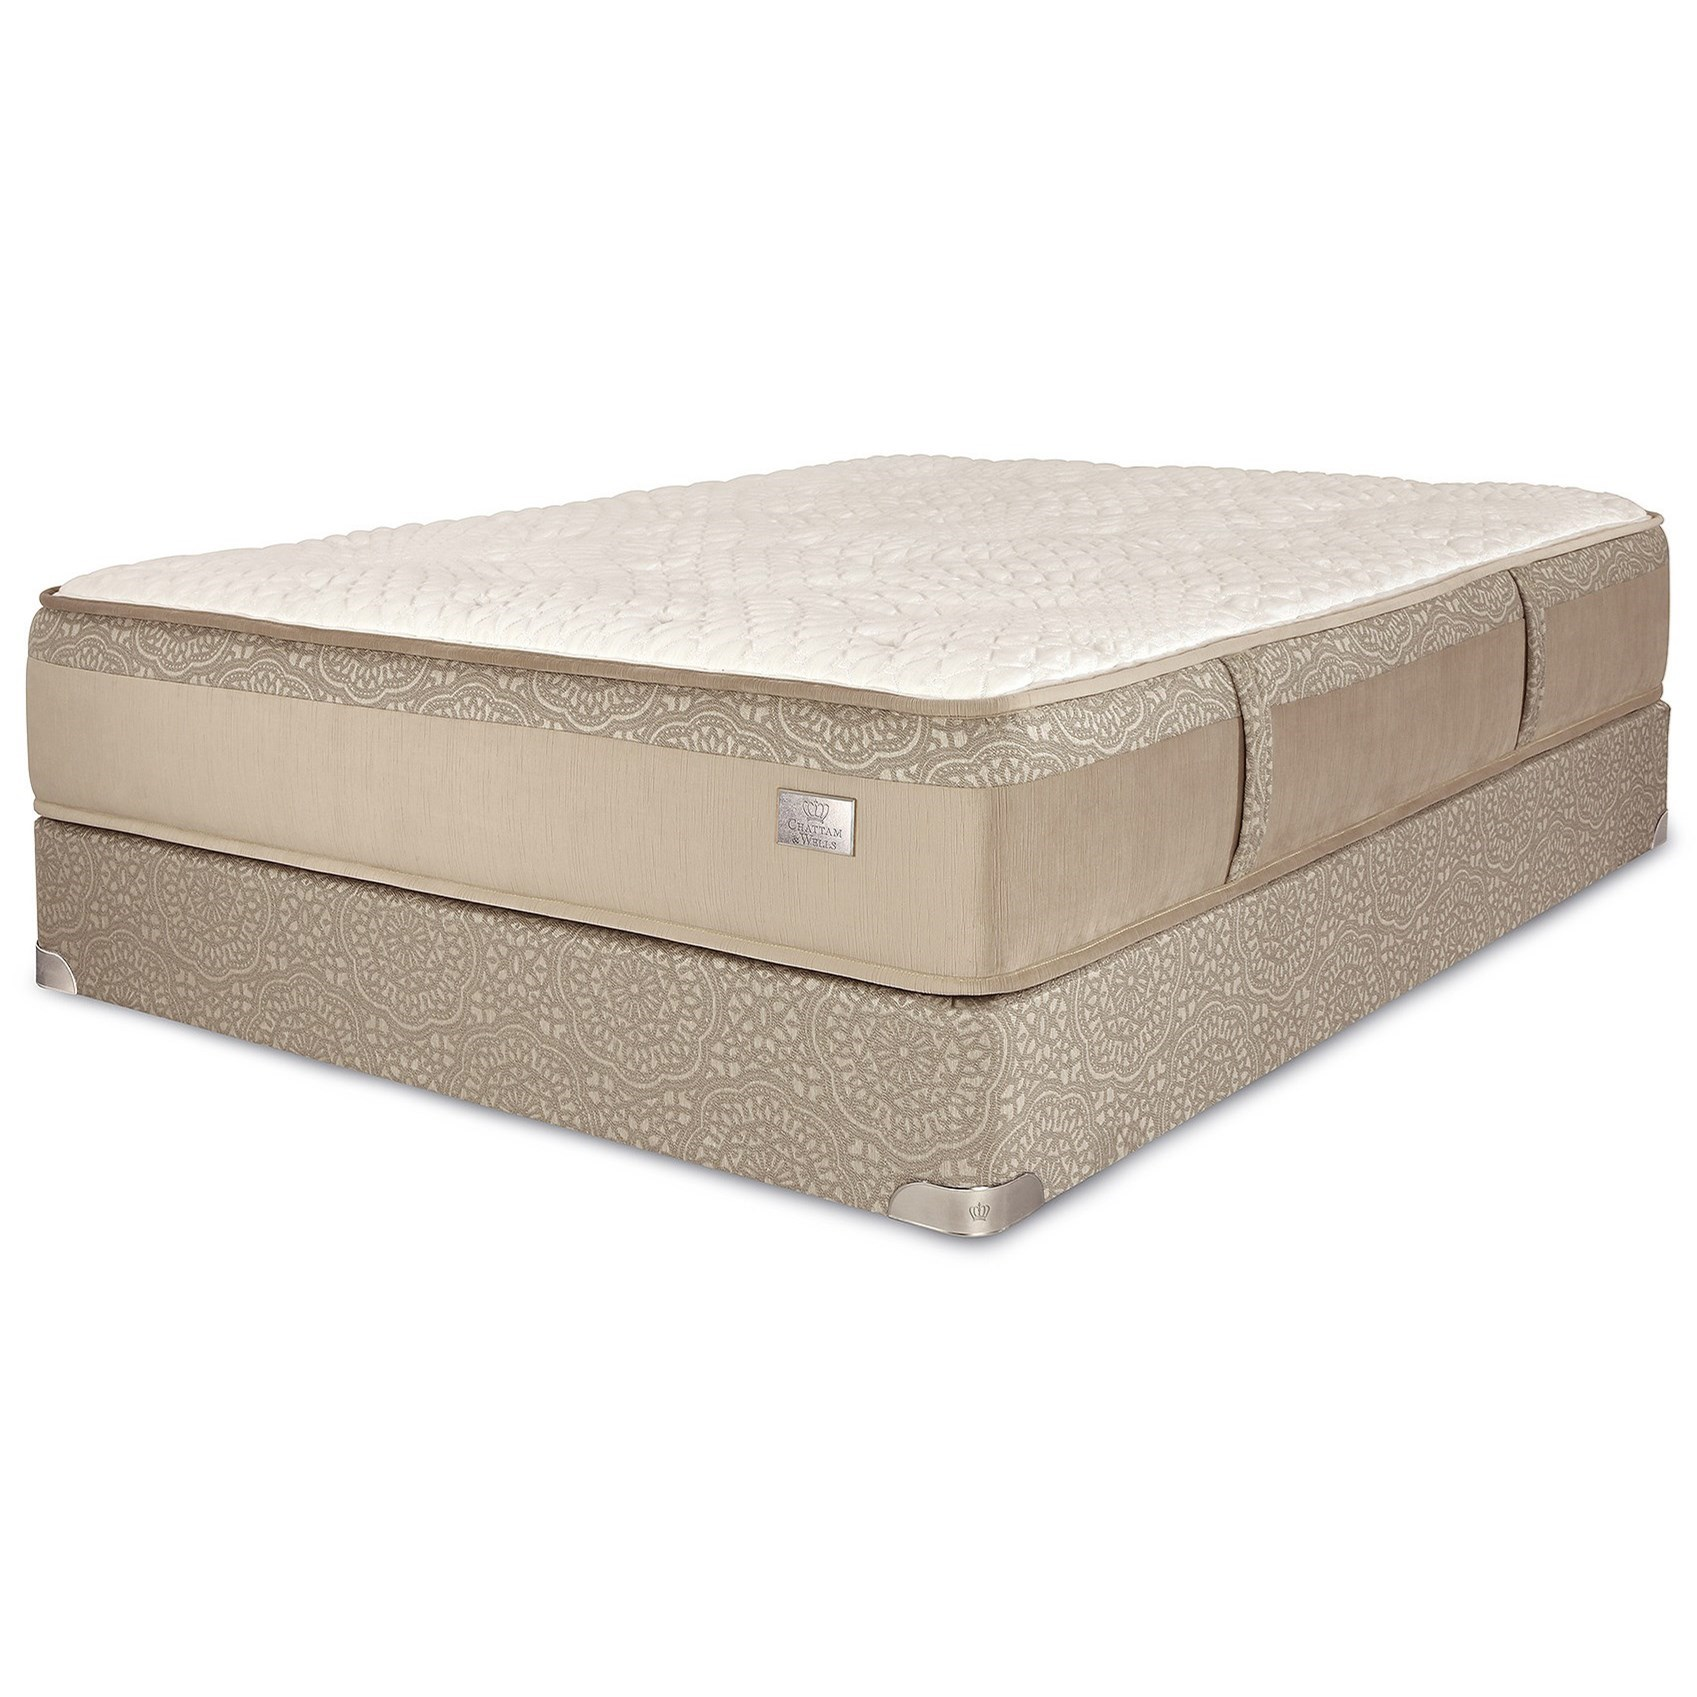 Full Innerspring Mattress Set